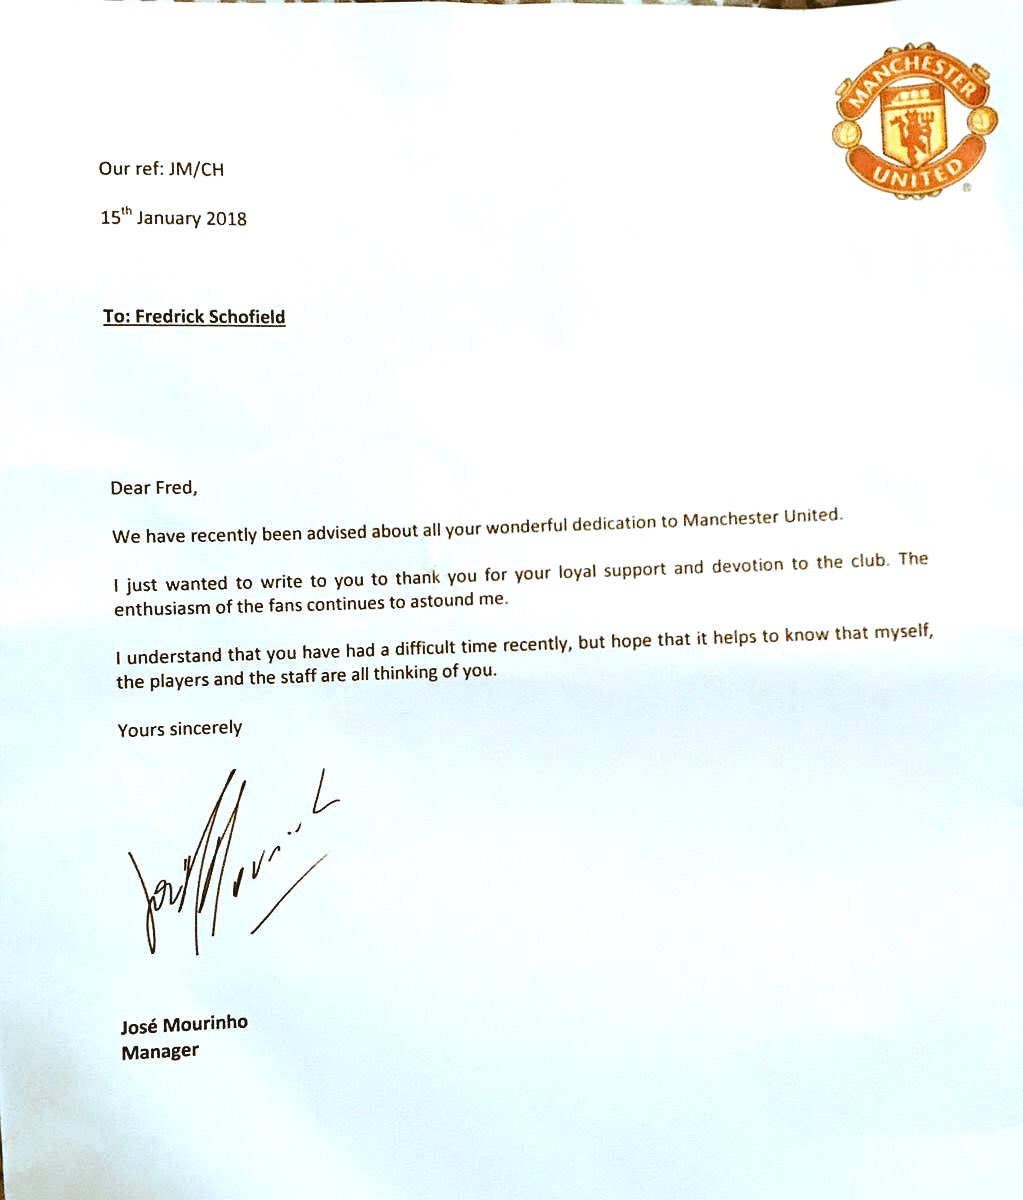 José Mourinho Sends Touching Letter To 94 Year Old